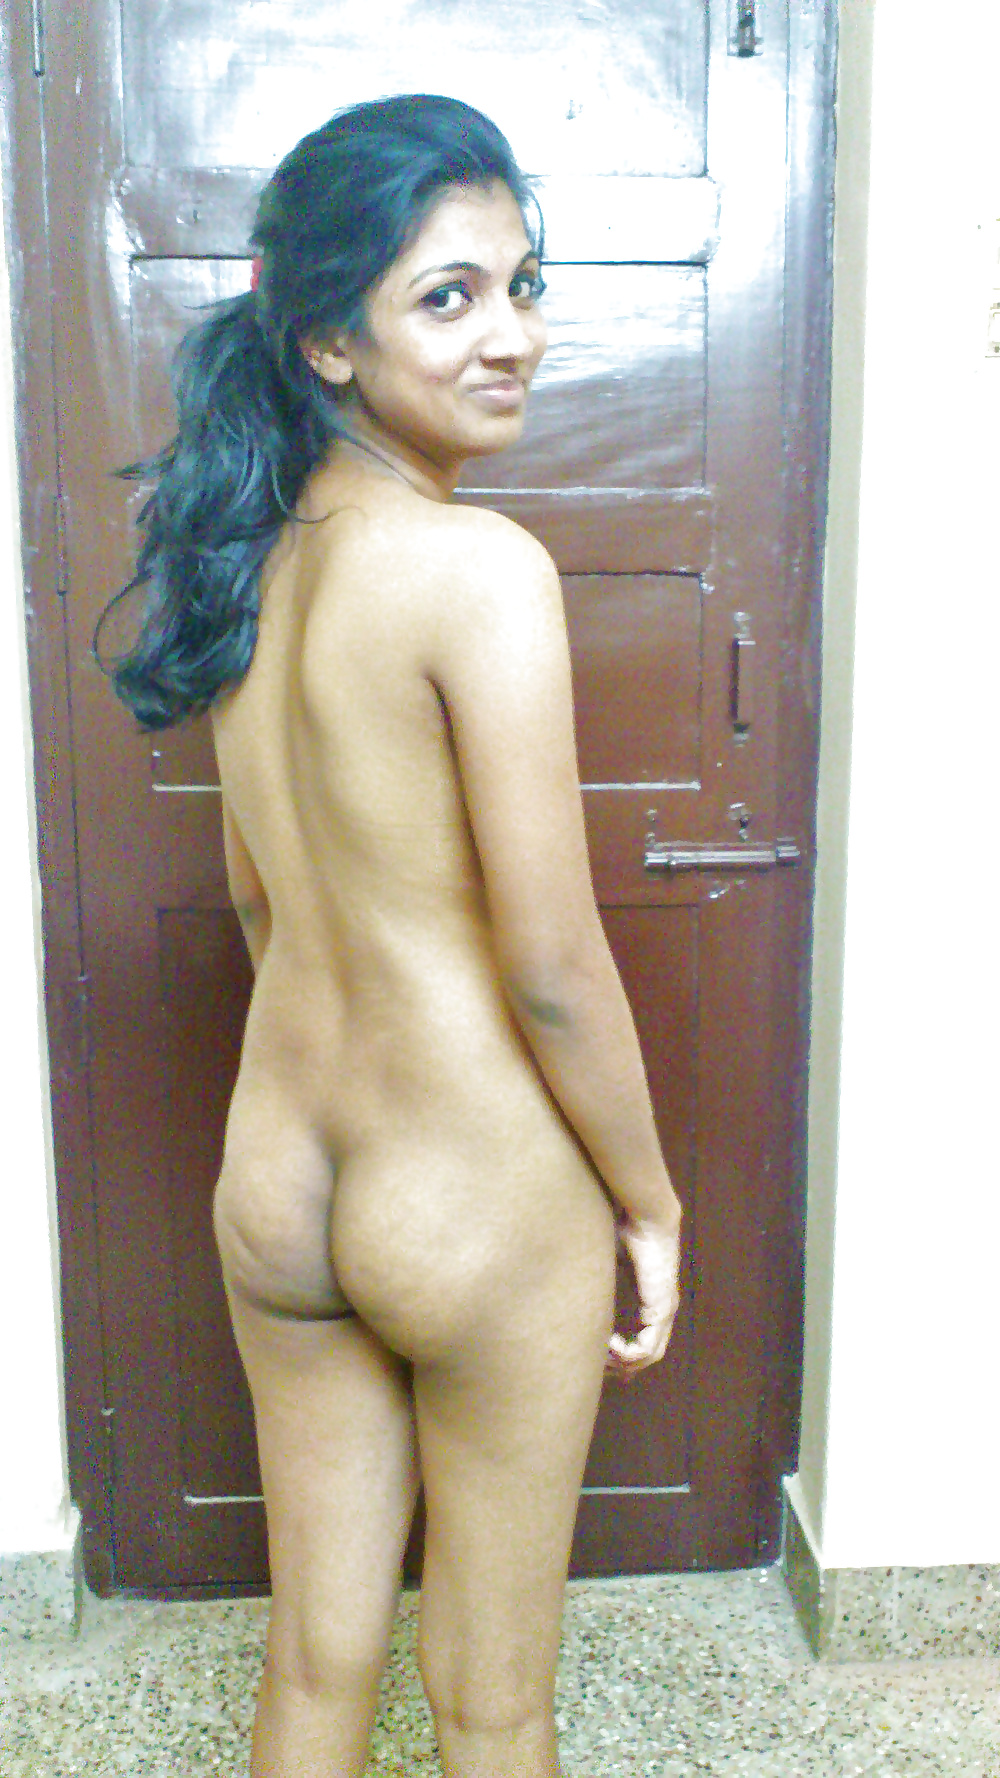 gujrat-naked-girls-torrents-girls-hot-webcam